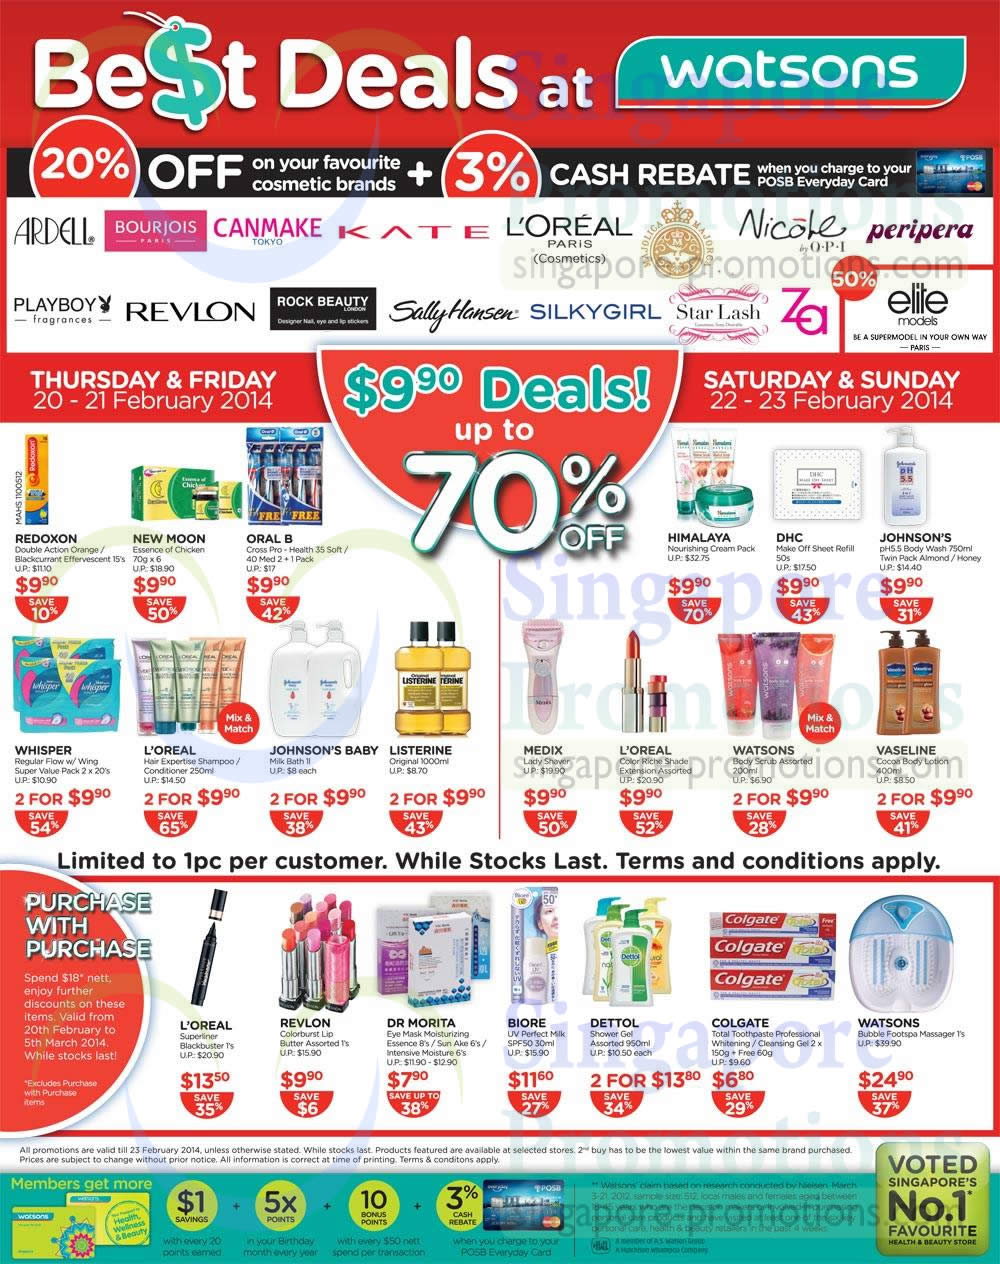 20 Percent Off Selected Cosmetic Brands, 9.90 Deals, Revlon, Loreal, Biore, Redoxon, New Moon, DHC, Himalaya, Johnsons, Medix